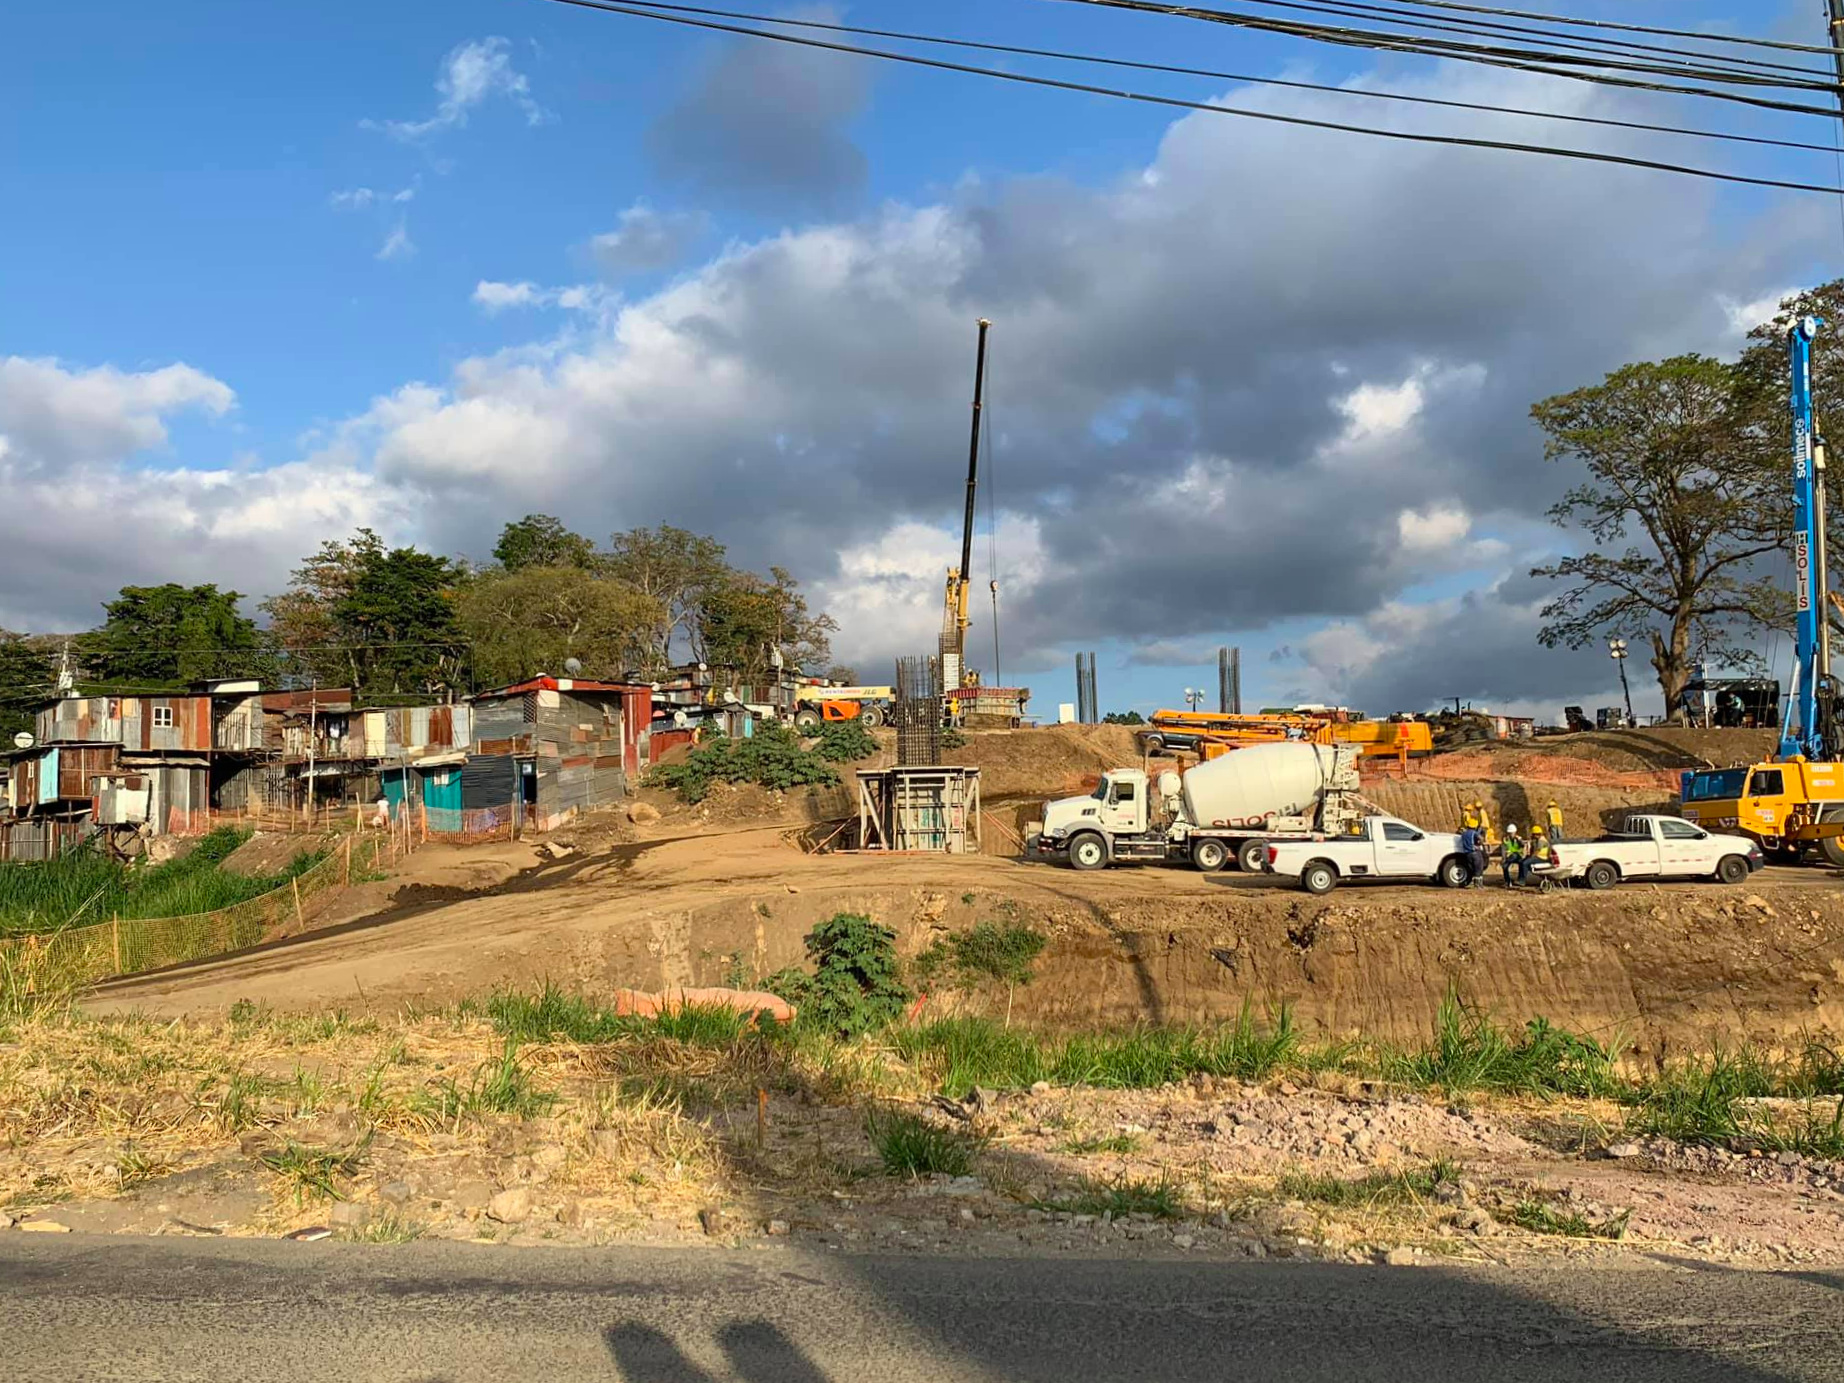 The Costa Rican government has razed parts of the squatter community Triángulo de la Solidaridad in San José to make way for a new highway. Hundreds of the Nicaraguans who lived there have already been displaced.